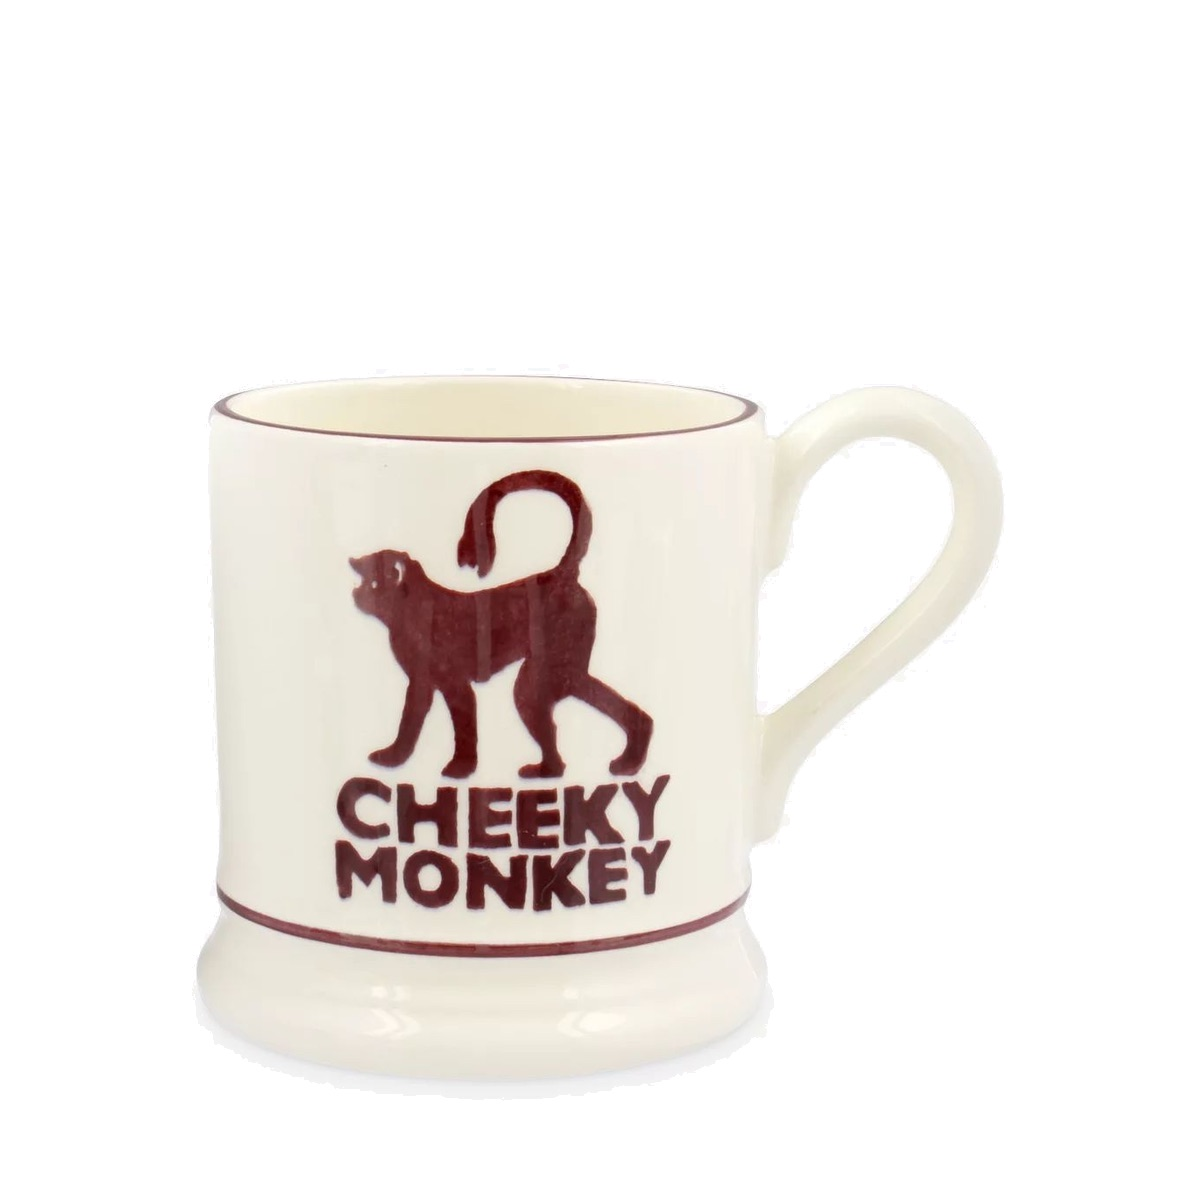 Cheeky Monkey 1/2 Pint Mug - Retired - 2 Available